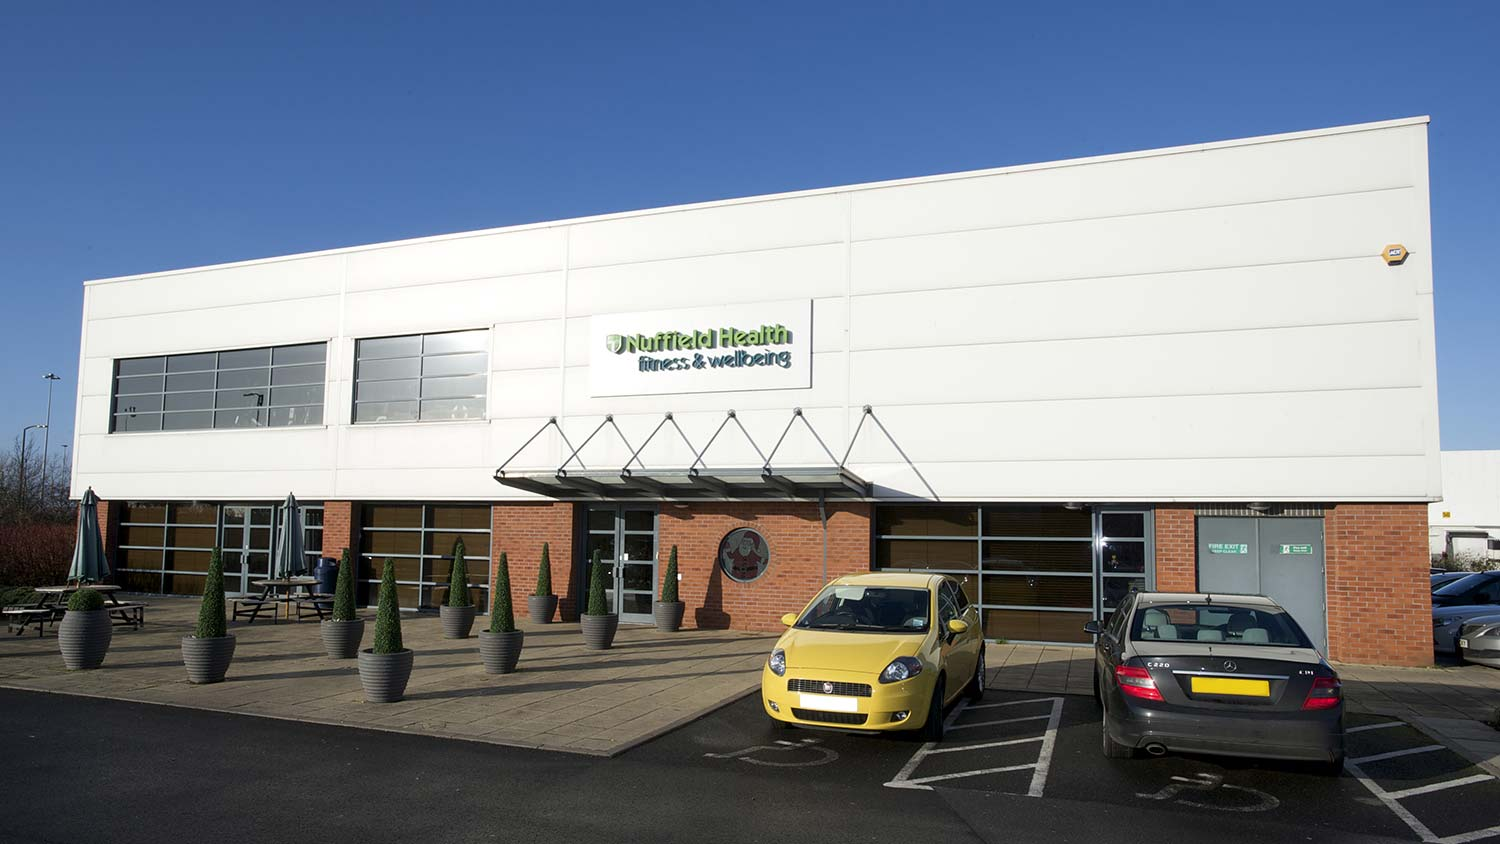 Doncaster Fitness & Wellbeing Gym